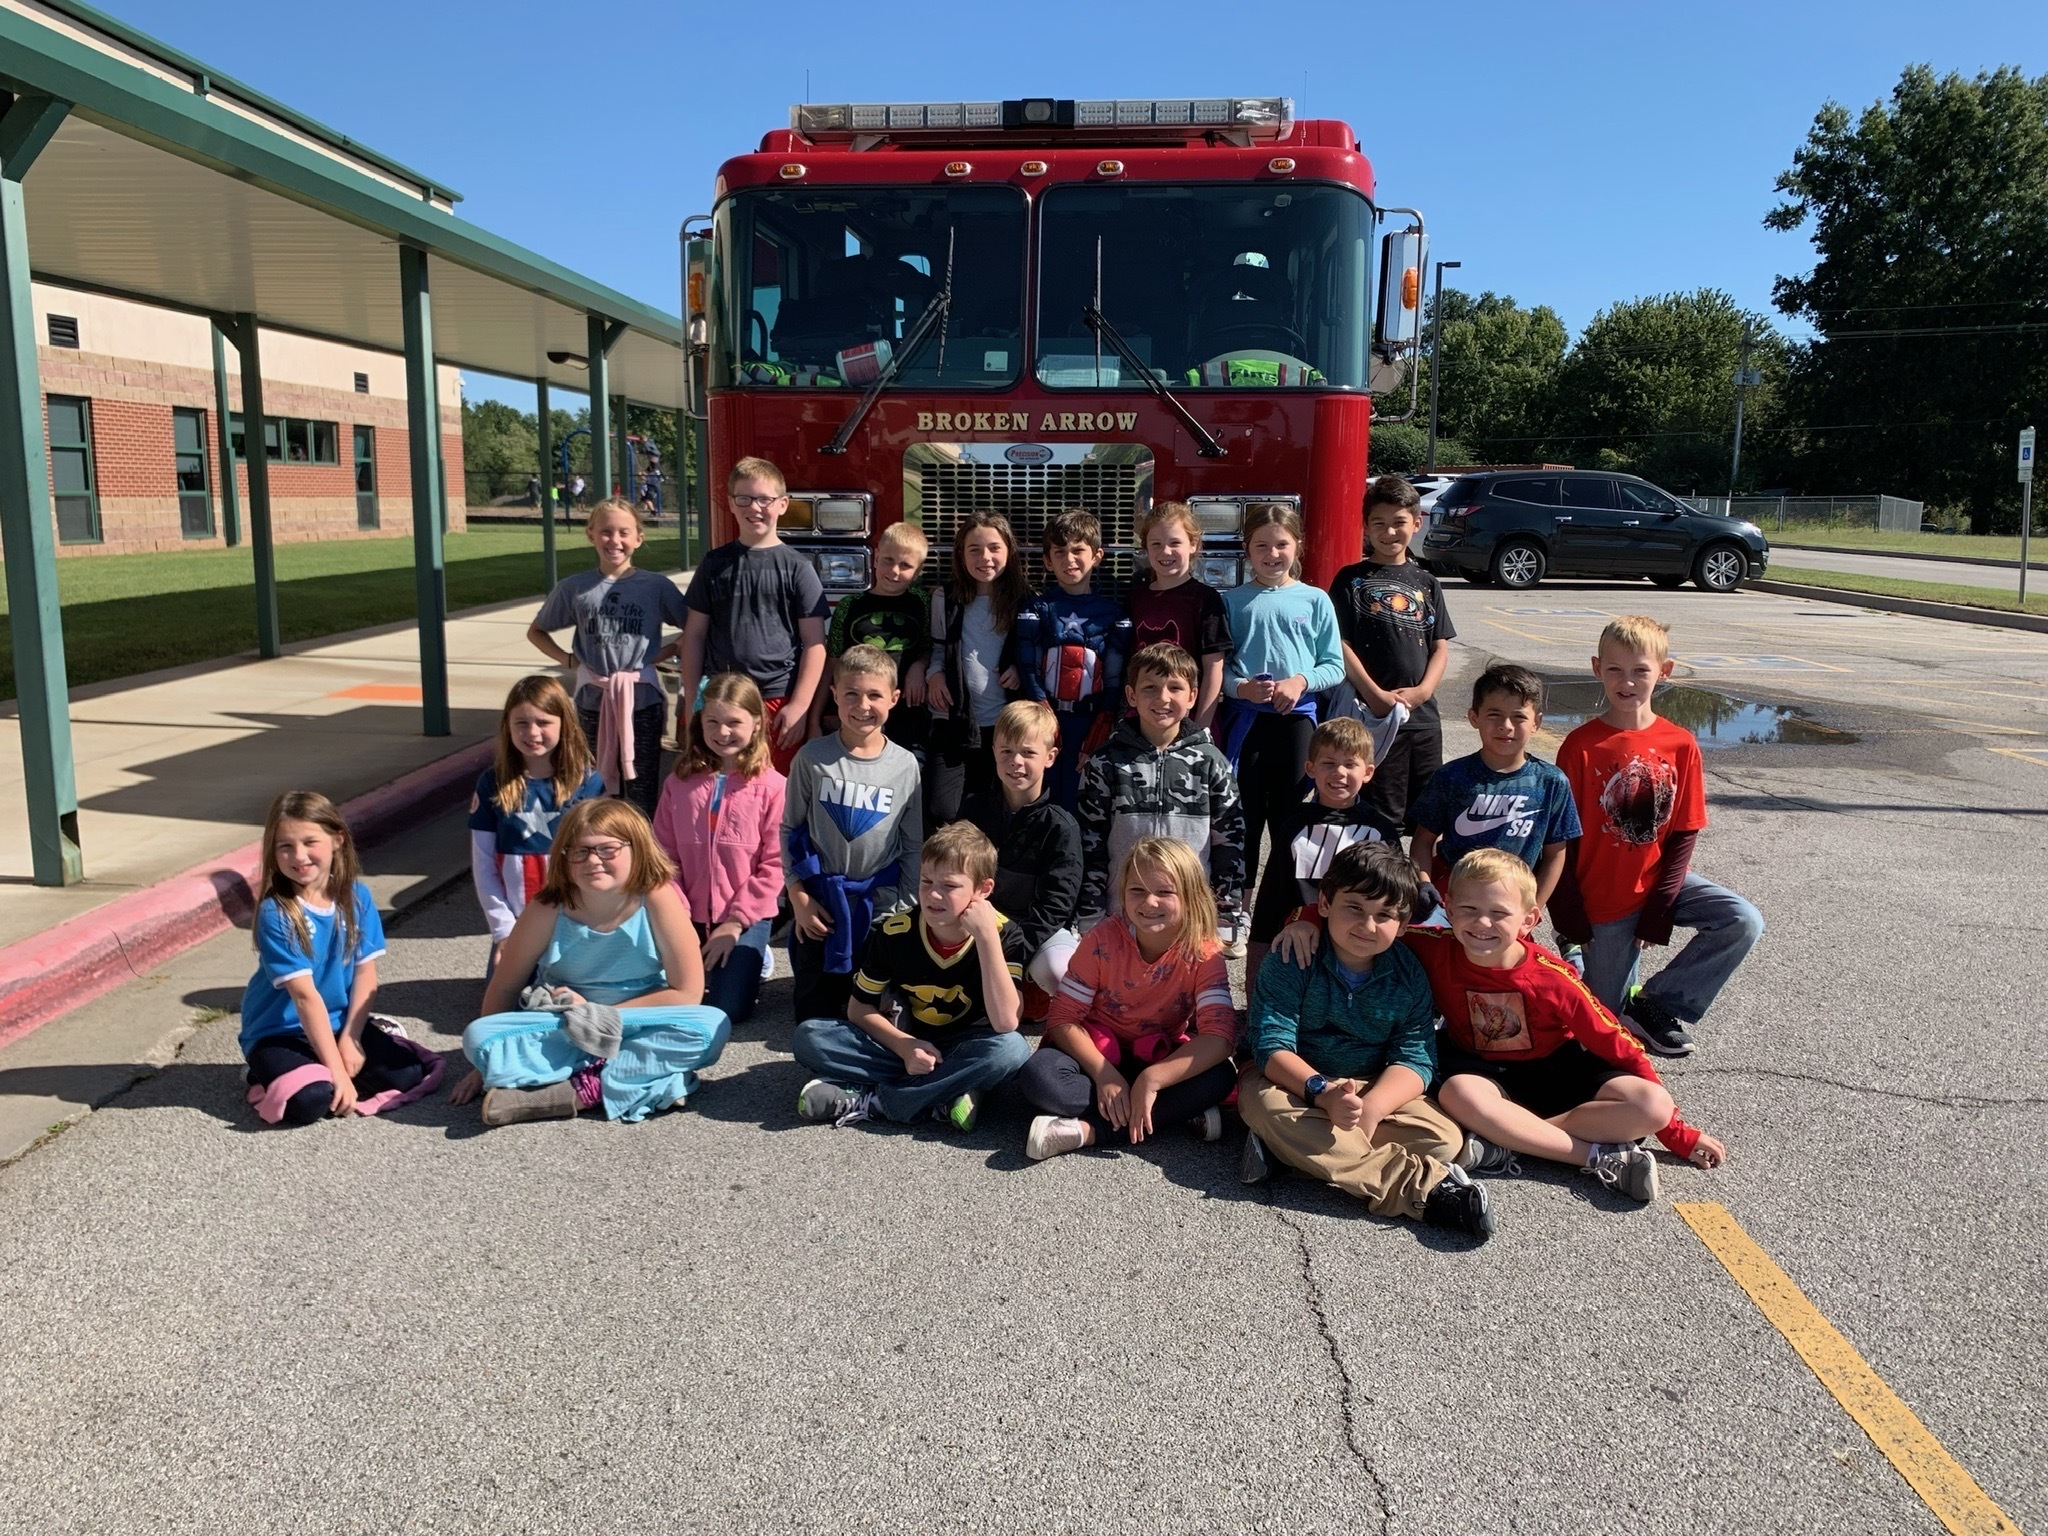 Mrs. Rodriguez's class enjoyed the presentation and exploring the fire truck!